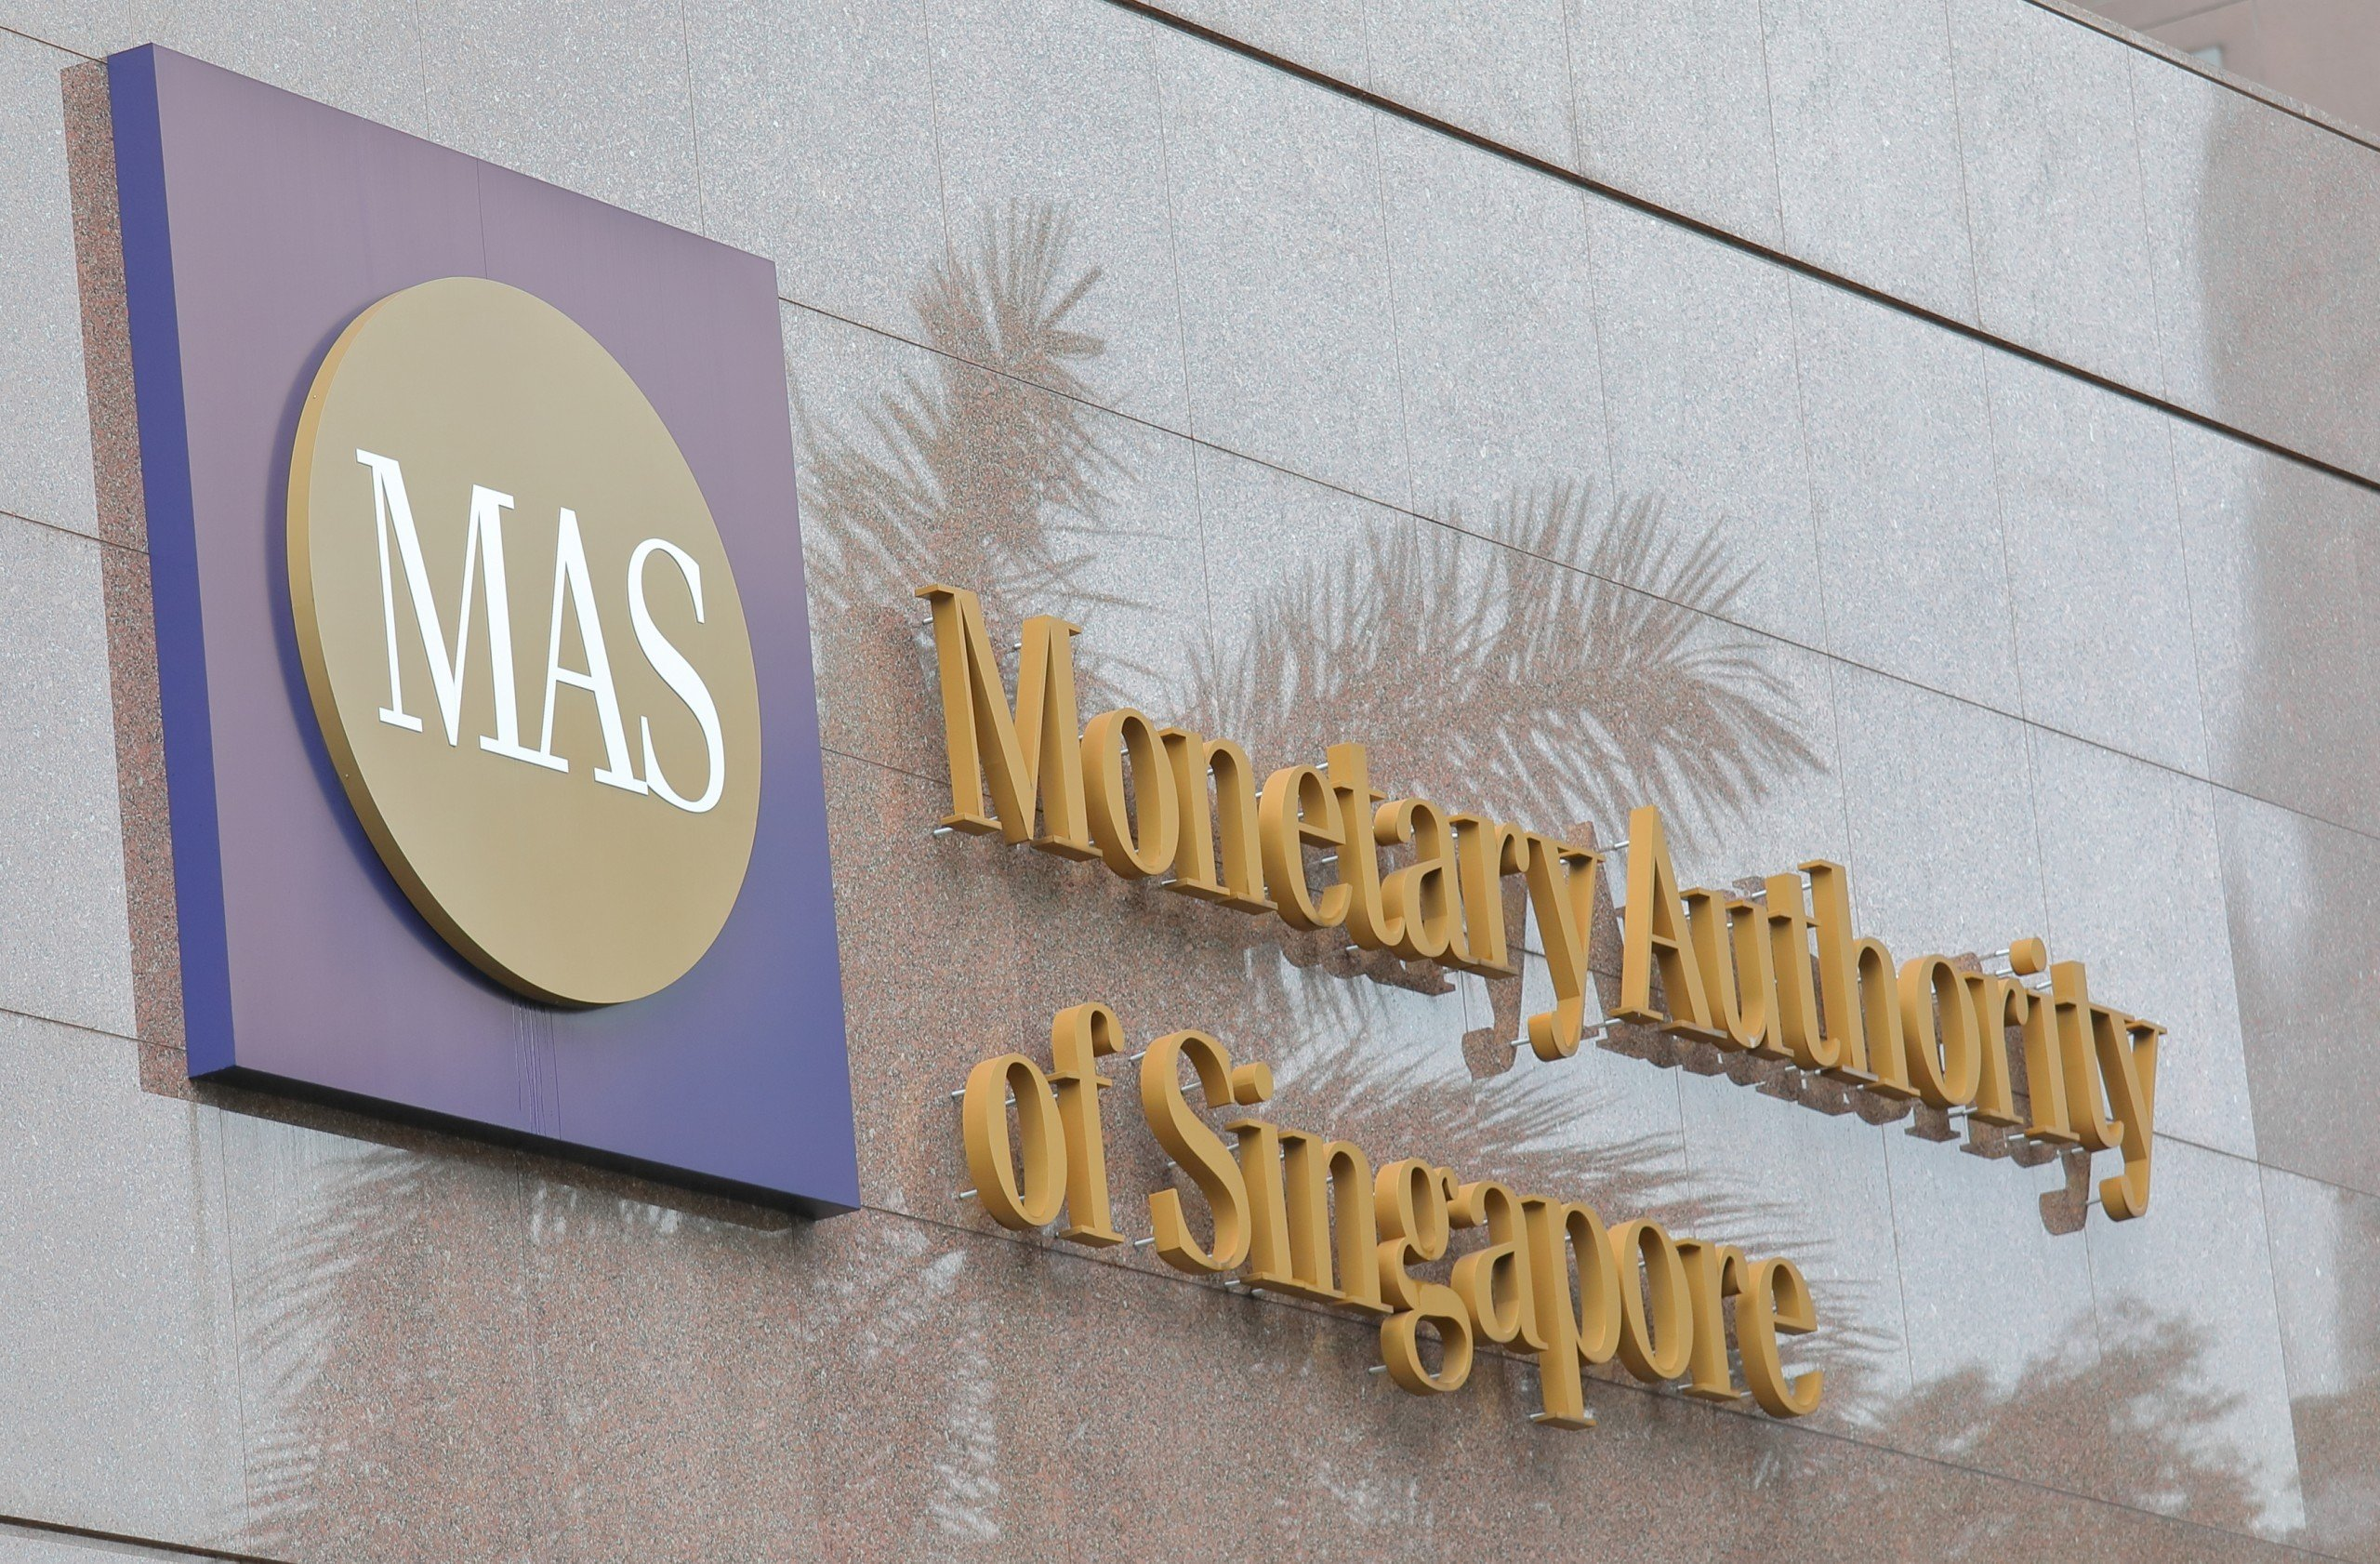 MAS head office building in Singapore